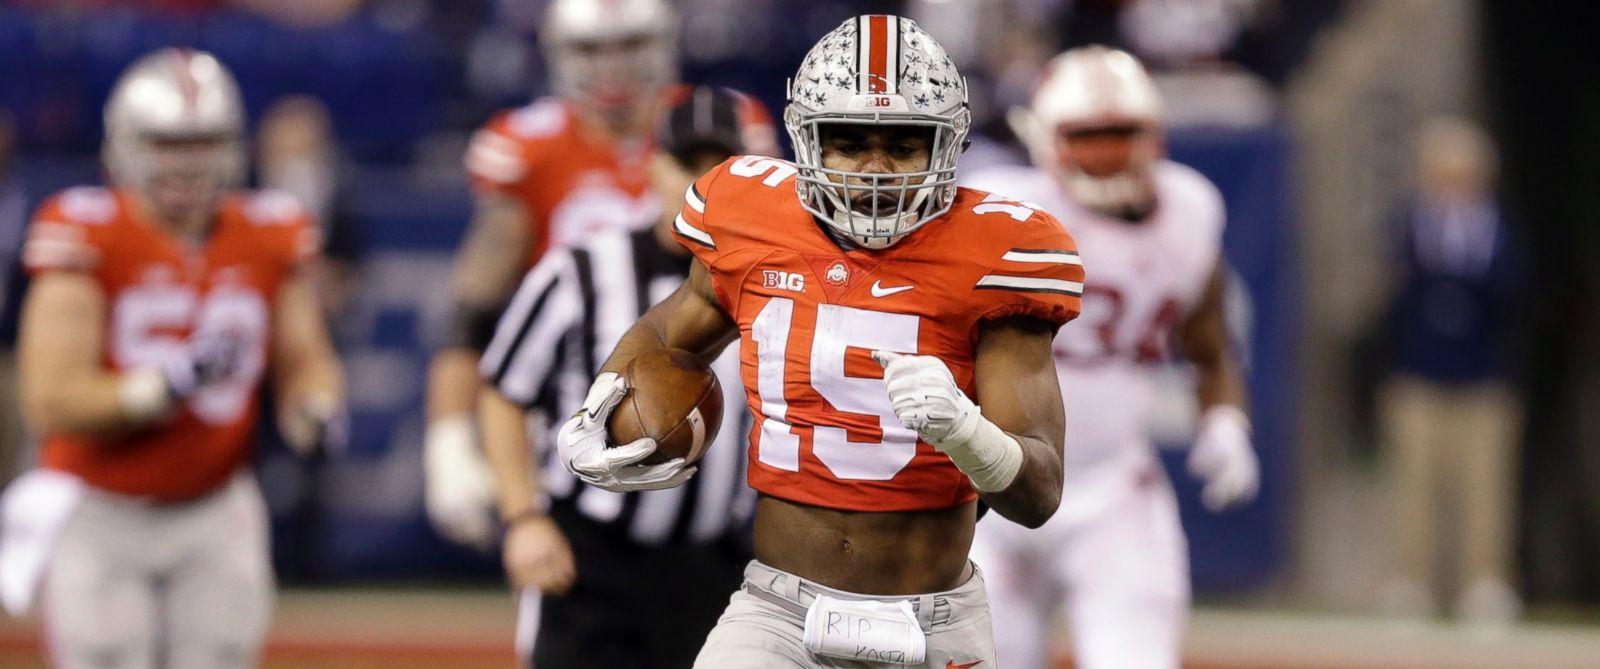 PHOTO: Ohio State running back Ezekiel Elliott loses his shoe as he runs for a 60-yard gain, in this Dec. 6, 2014, file photo in Indianapolis.